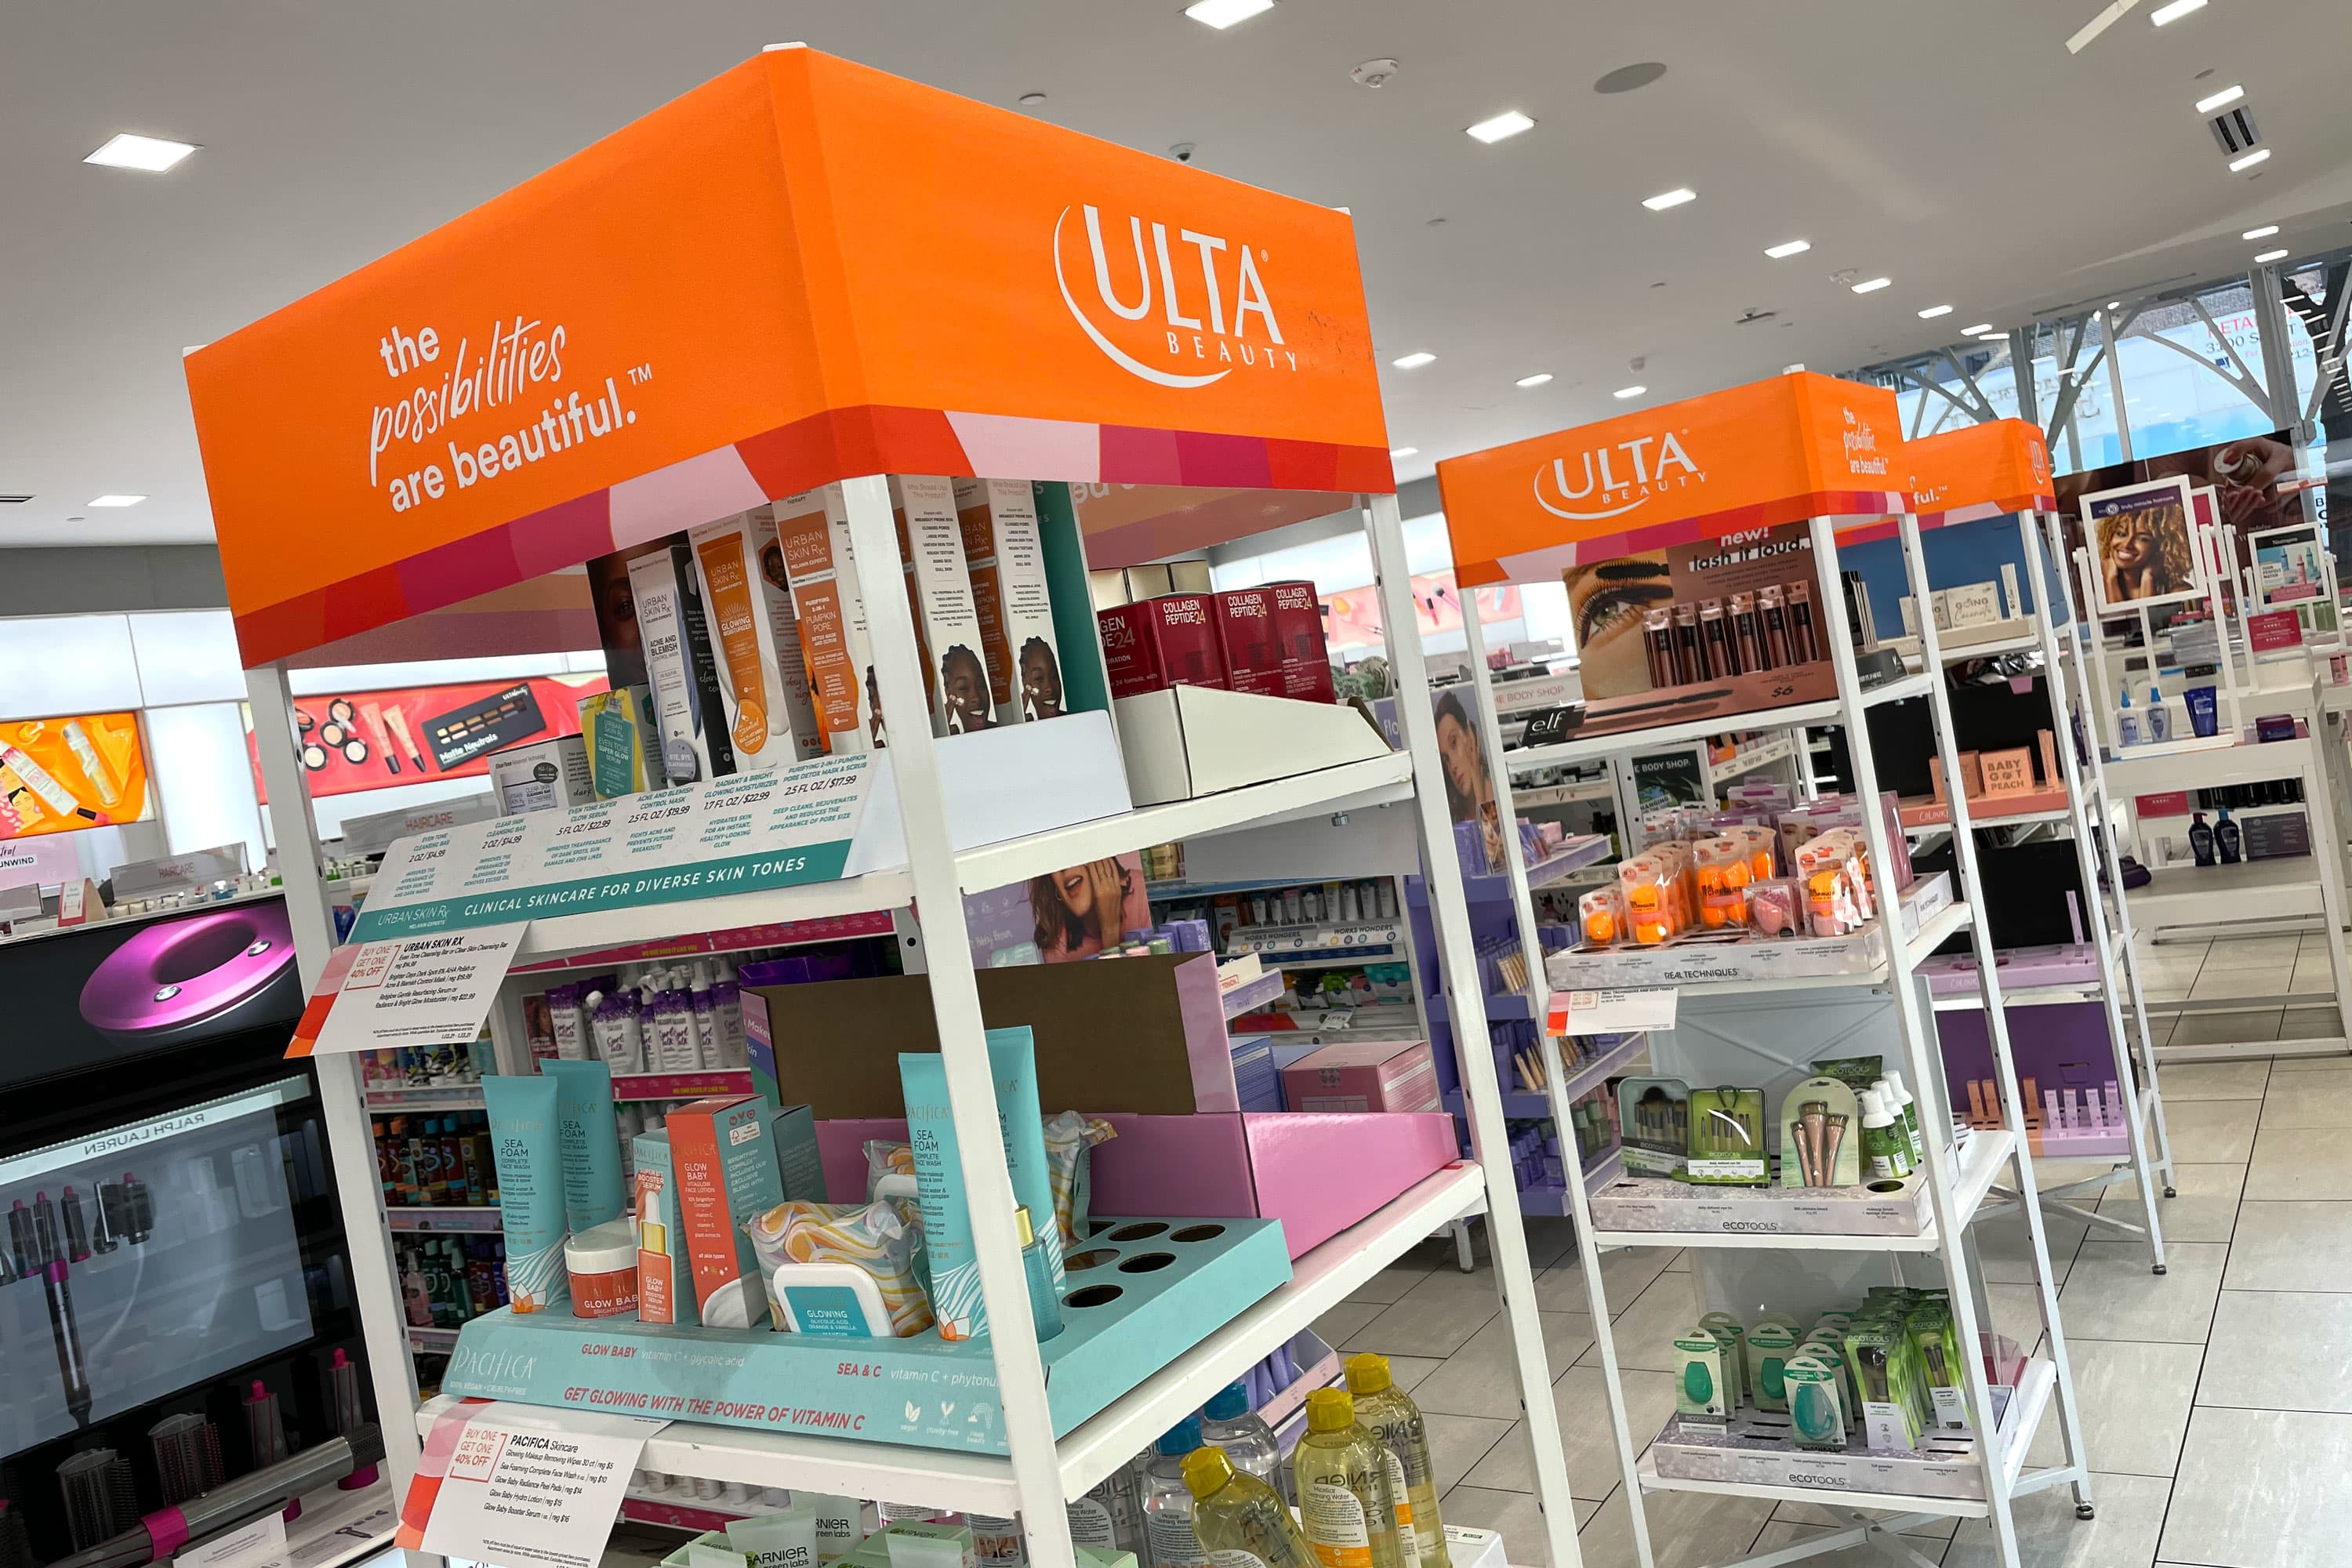 Ulta shares tumble on weaker-than-expected outlook retailer taps Dave Kimbell as CEO – CNBC